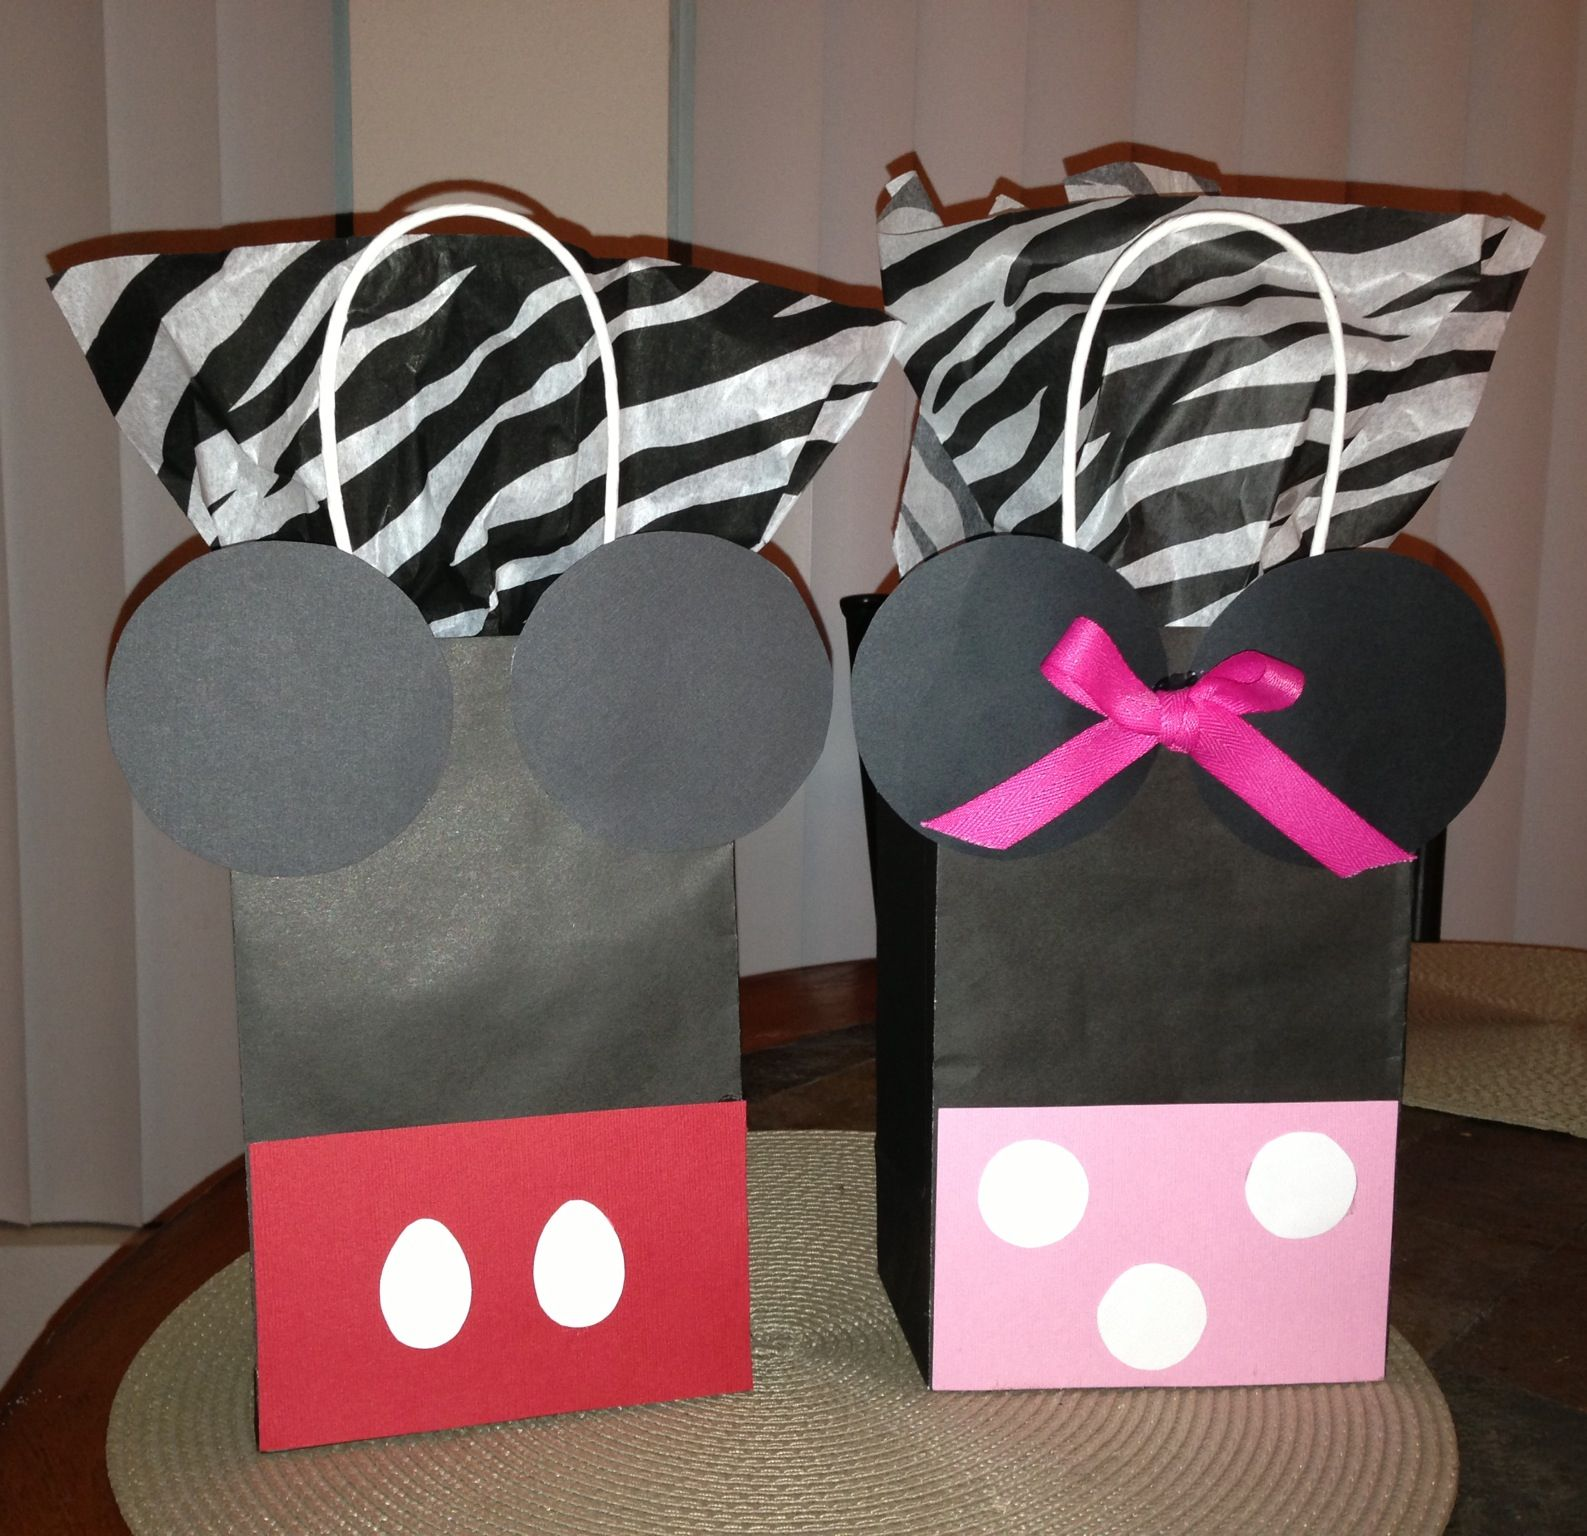 Best 25 Decorated Gift Bags Ideas On Pinterest: Best 25+ Birthday Goody Bags Ideas On Pinterest